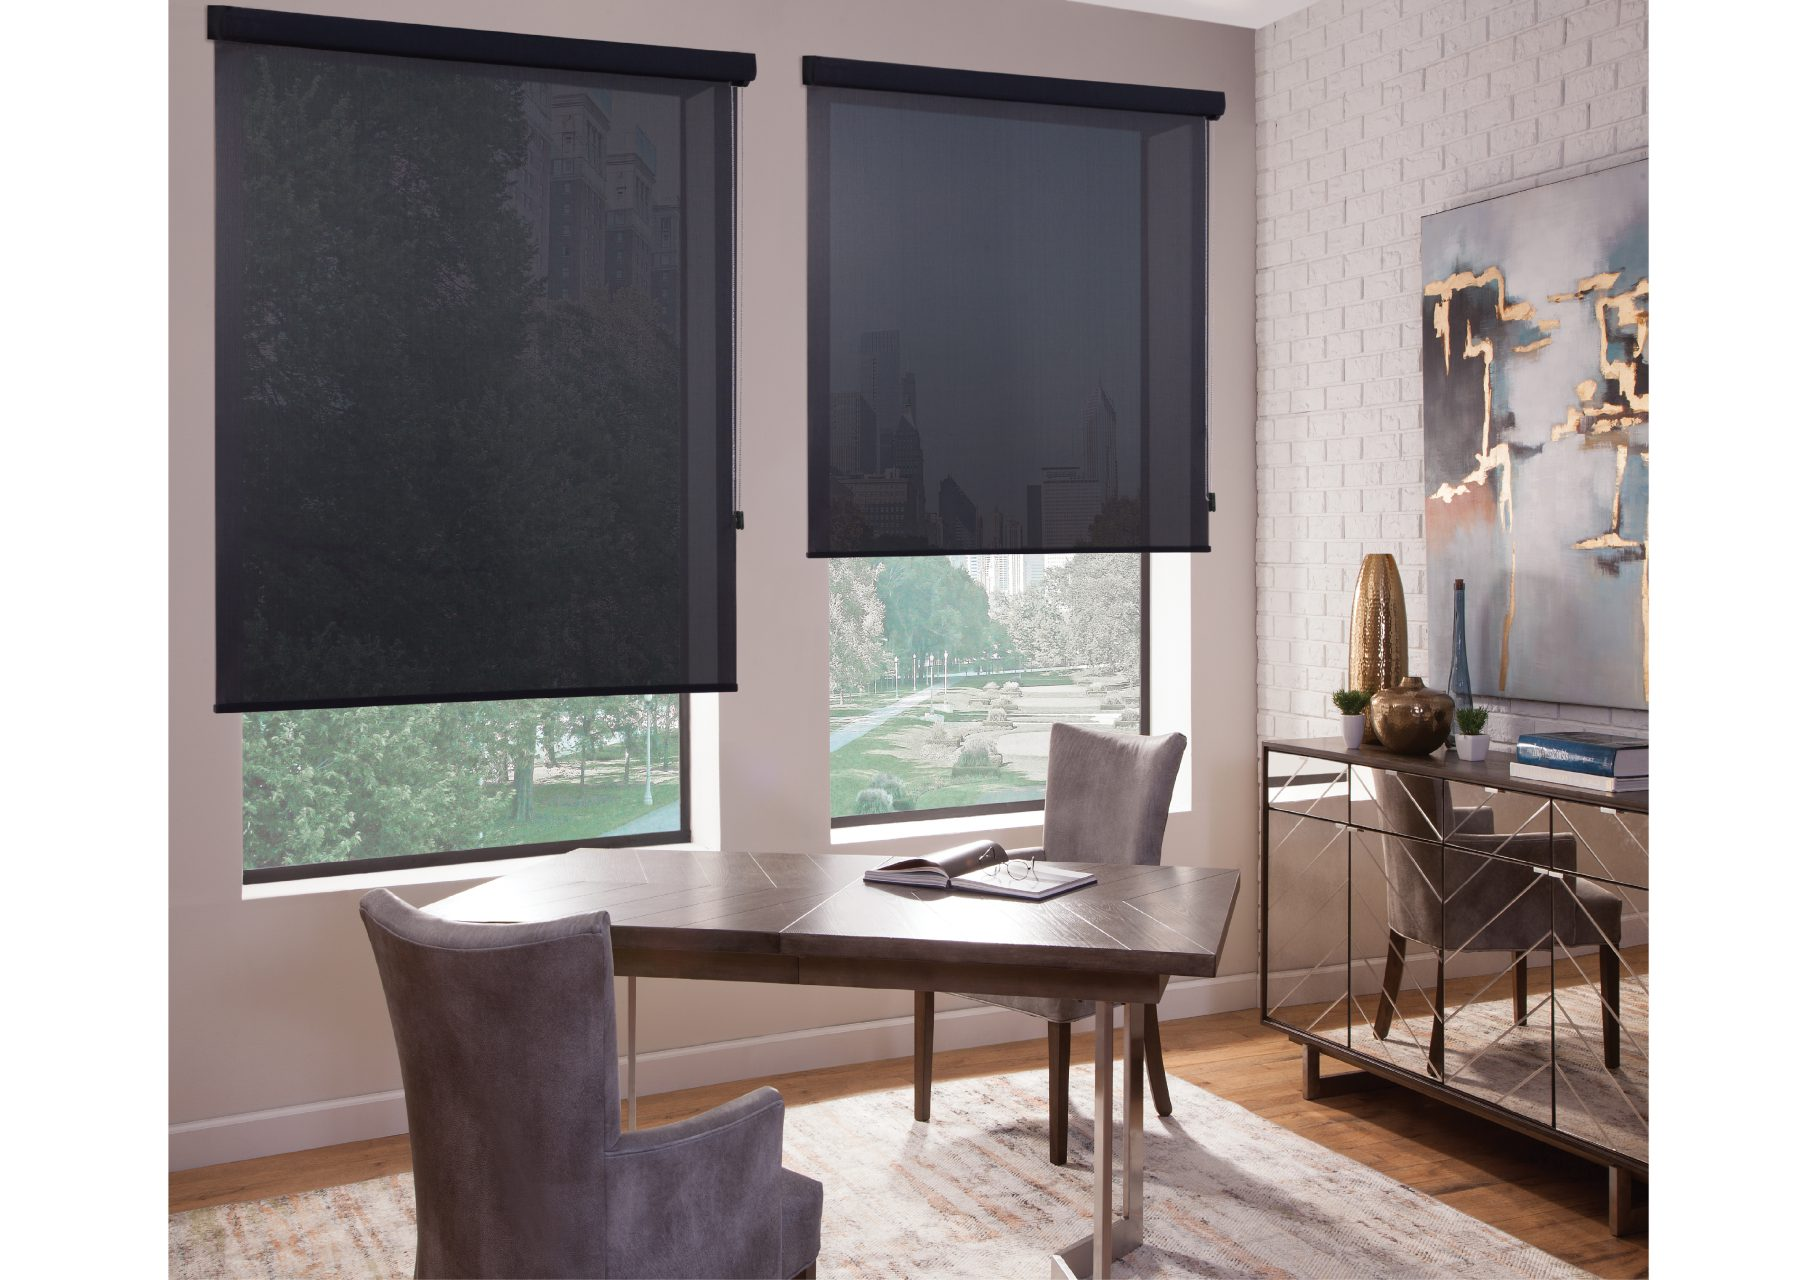 Black solar shades to prevent glare in your home office